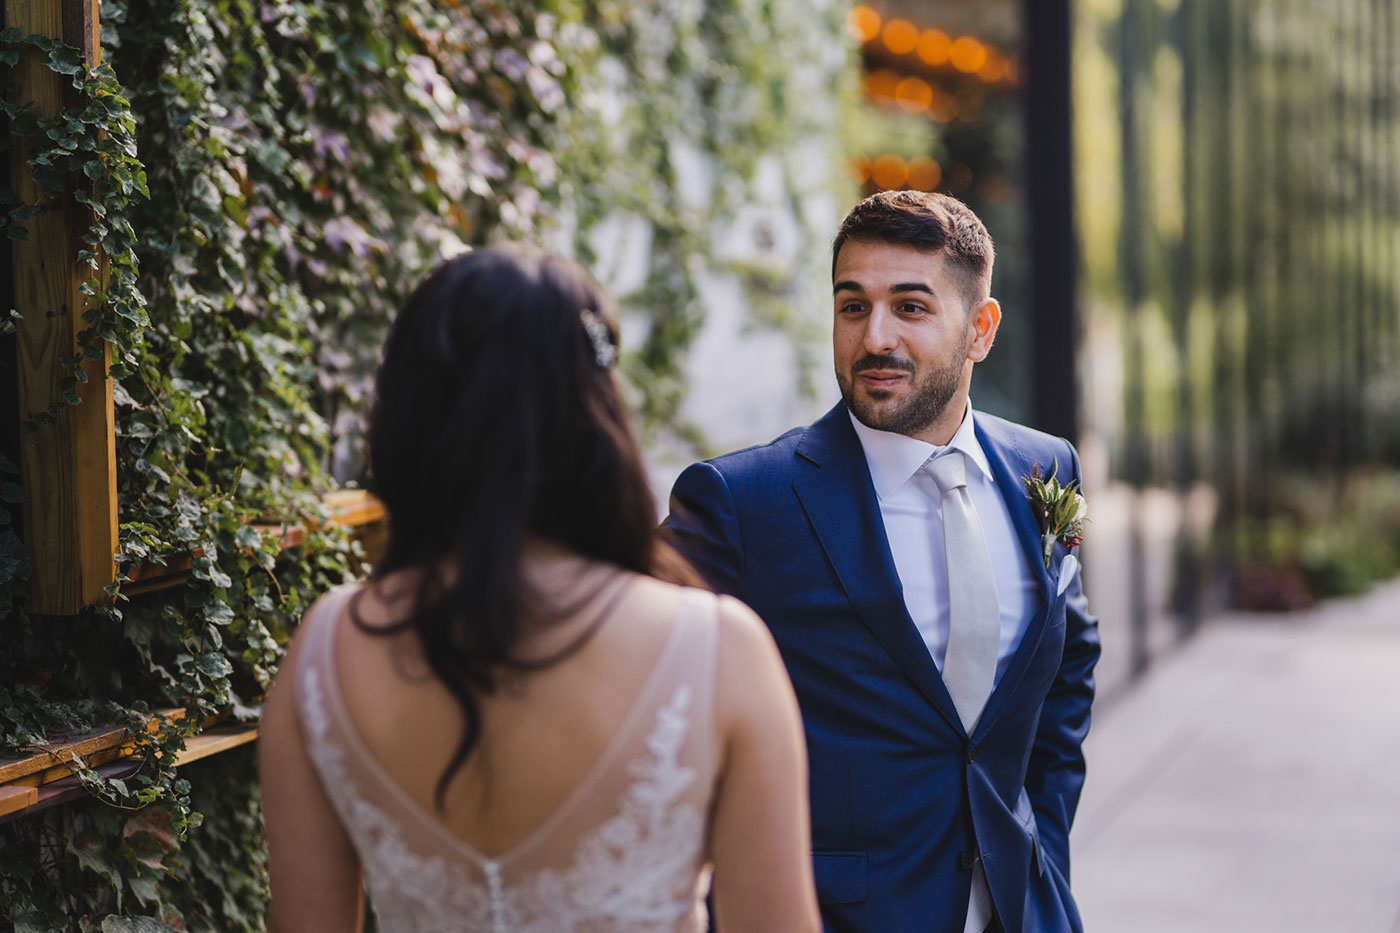 First Look from an elopement at Jane's Carousel in Brooklyn Bridge Park by Weddings by Hanel